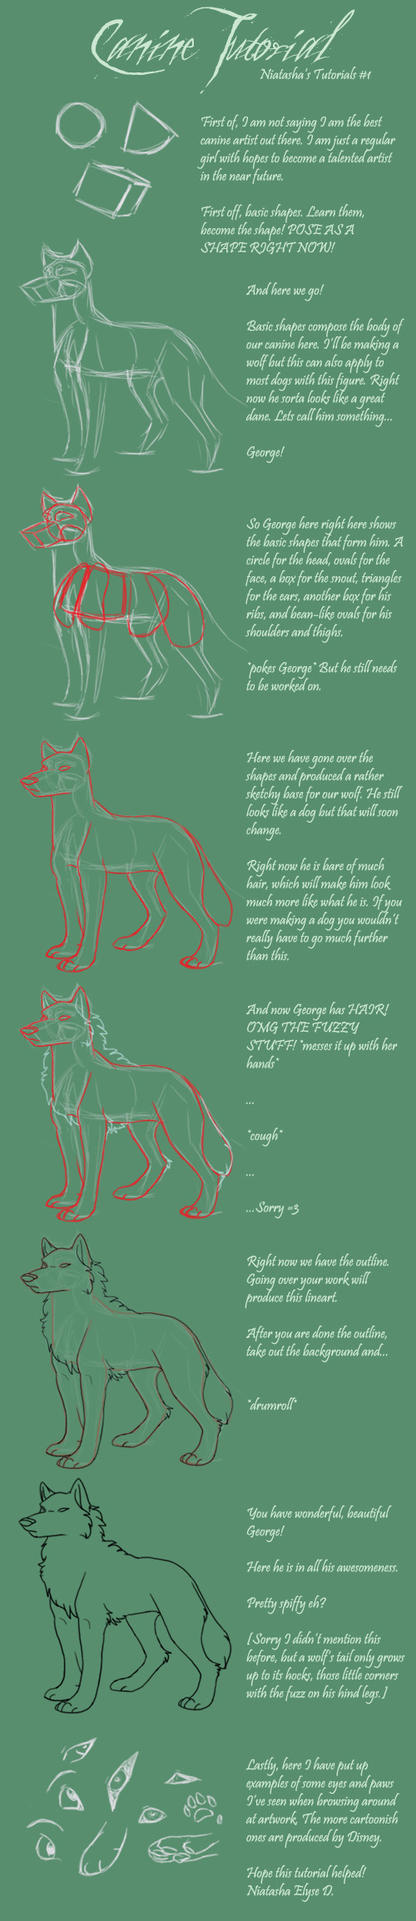 NT-1 Canine Tutorial by Lenval